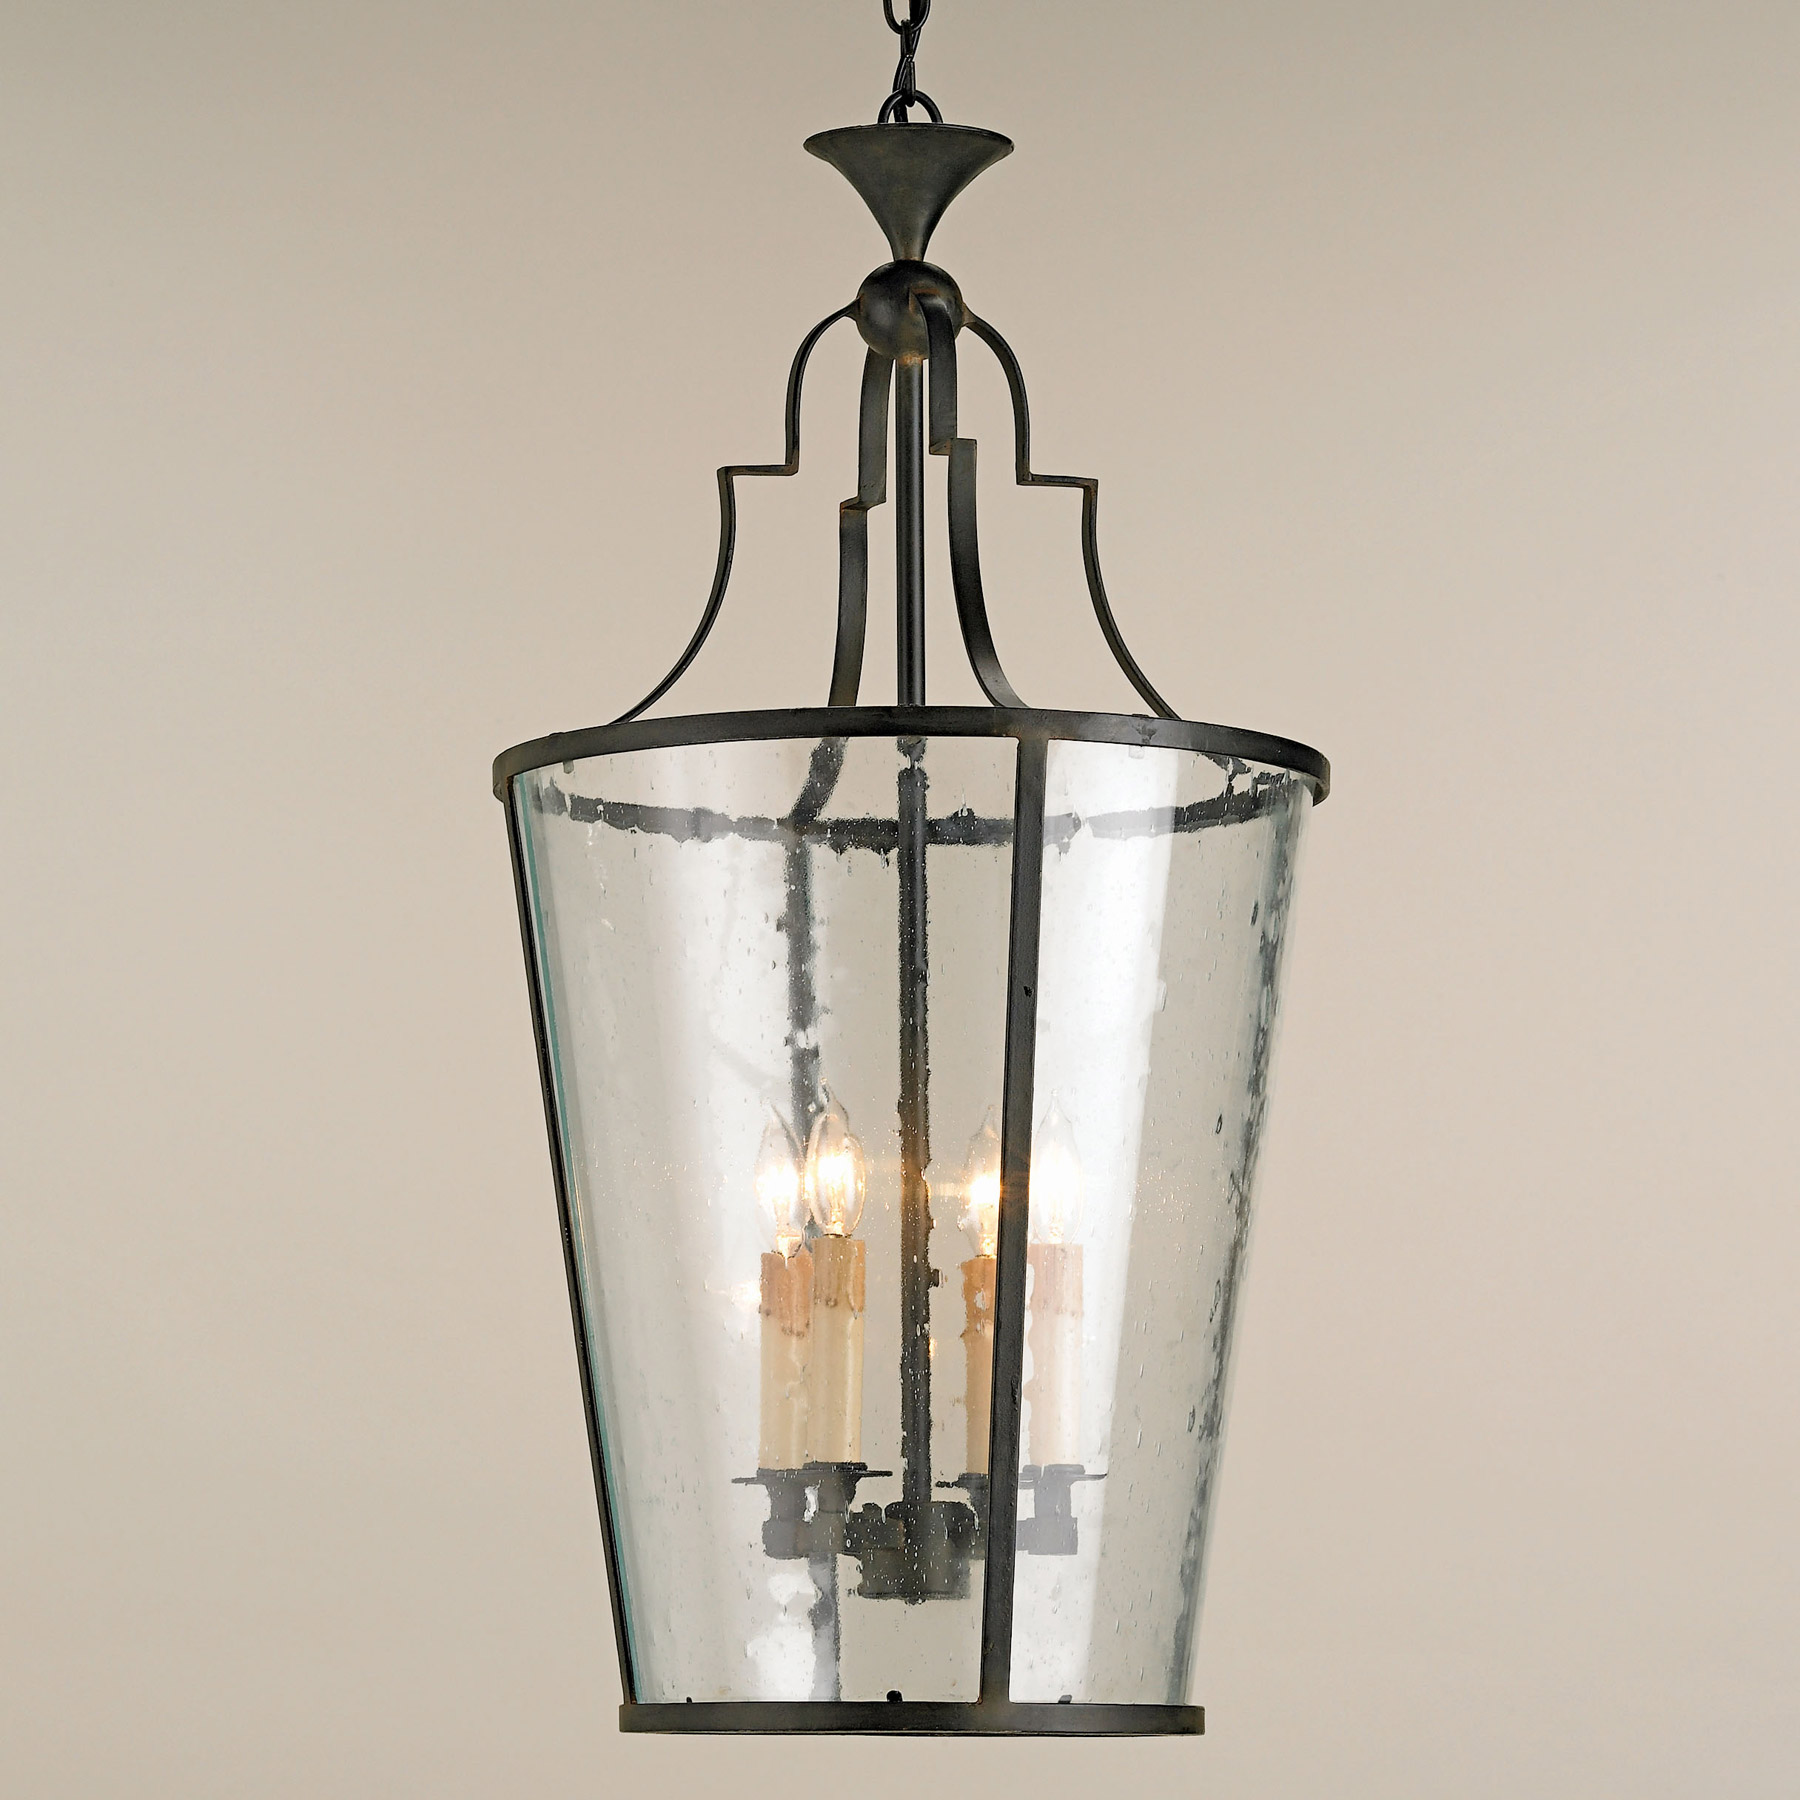 Foyer Lighting Lantern : Currey and company fergus lantern